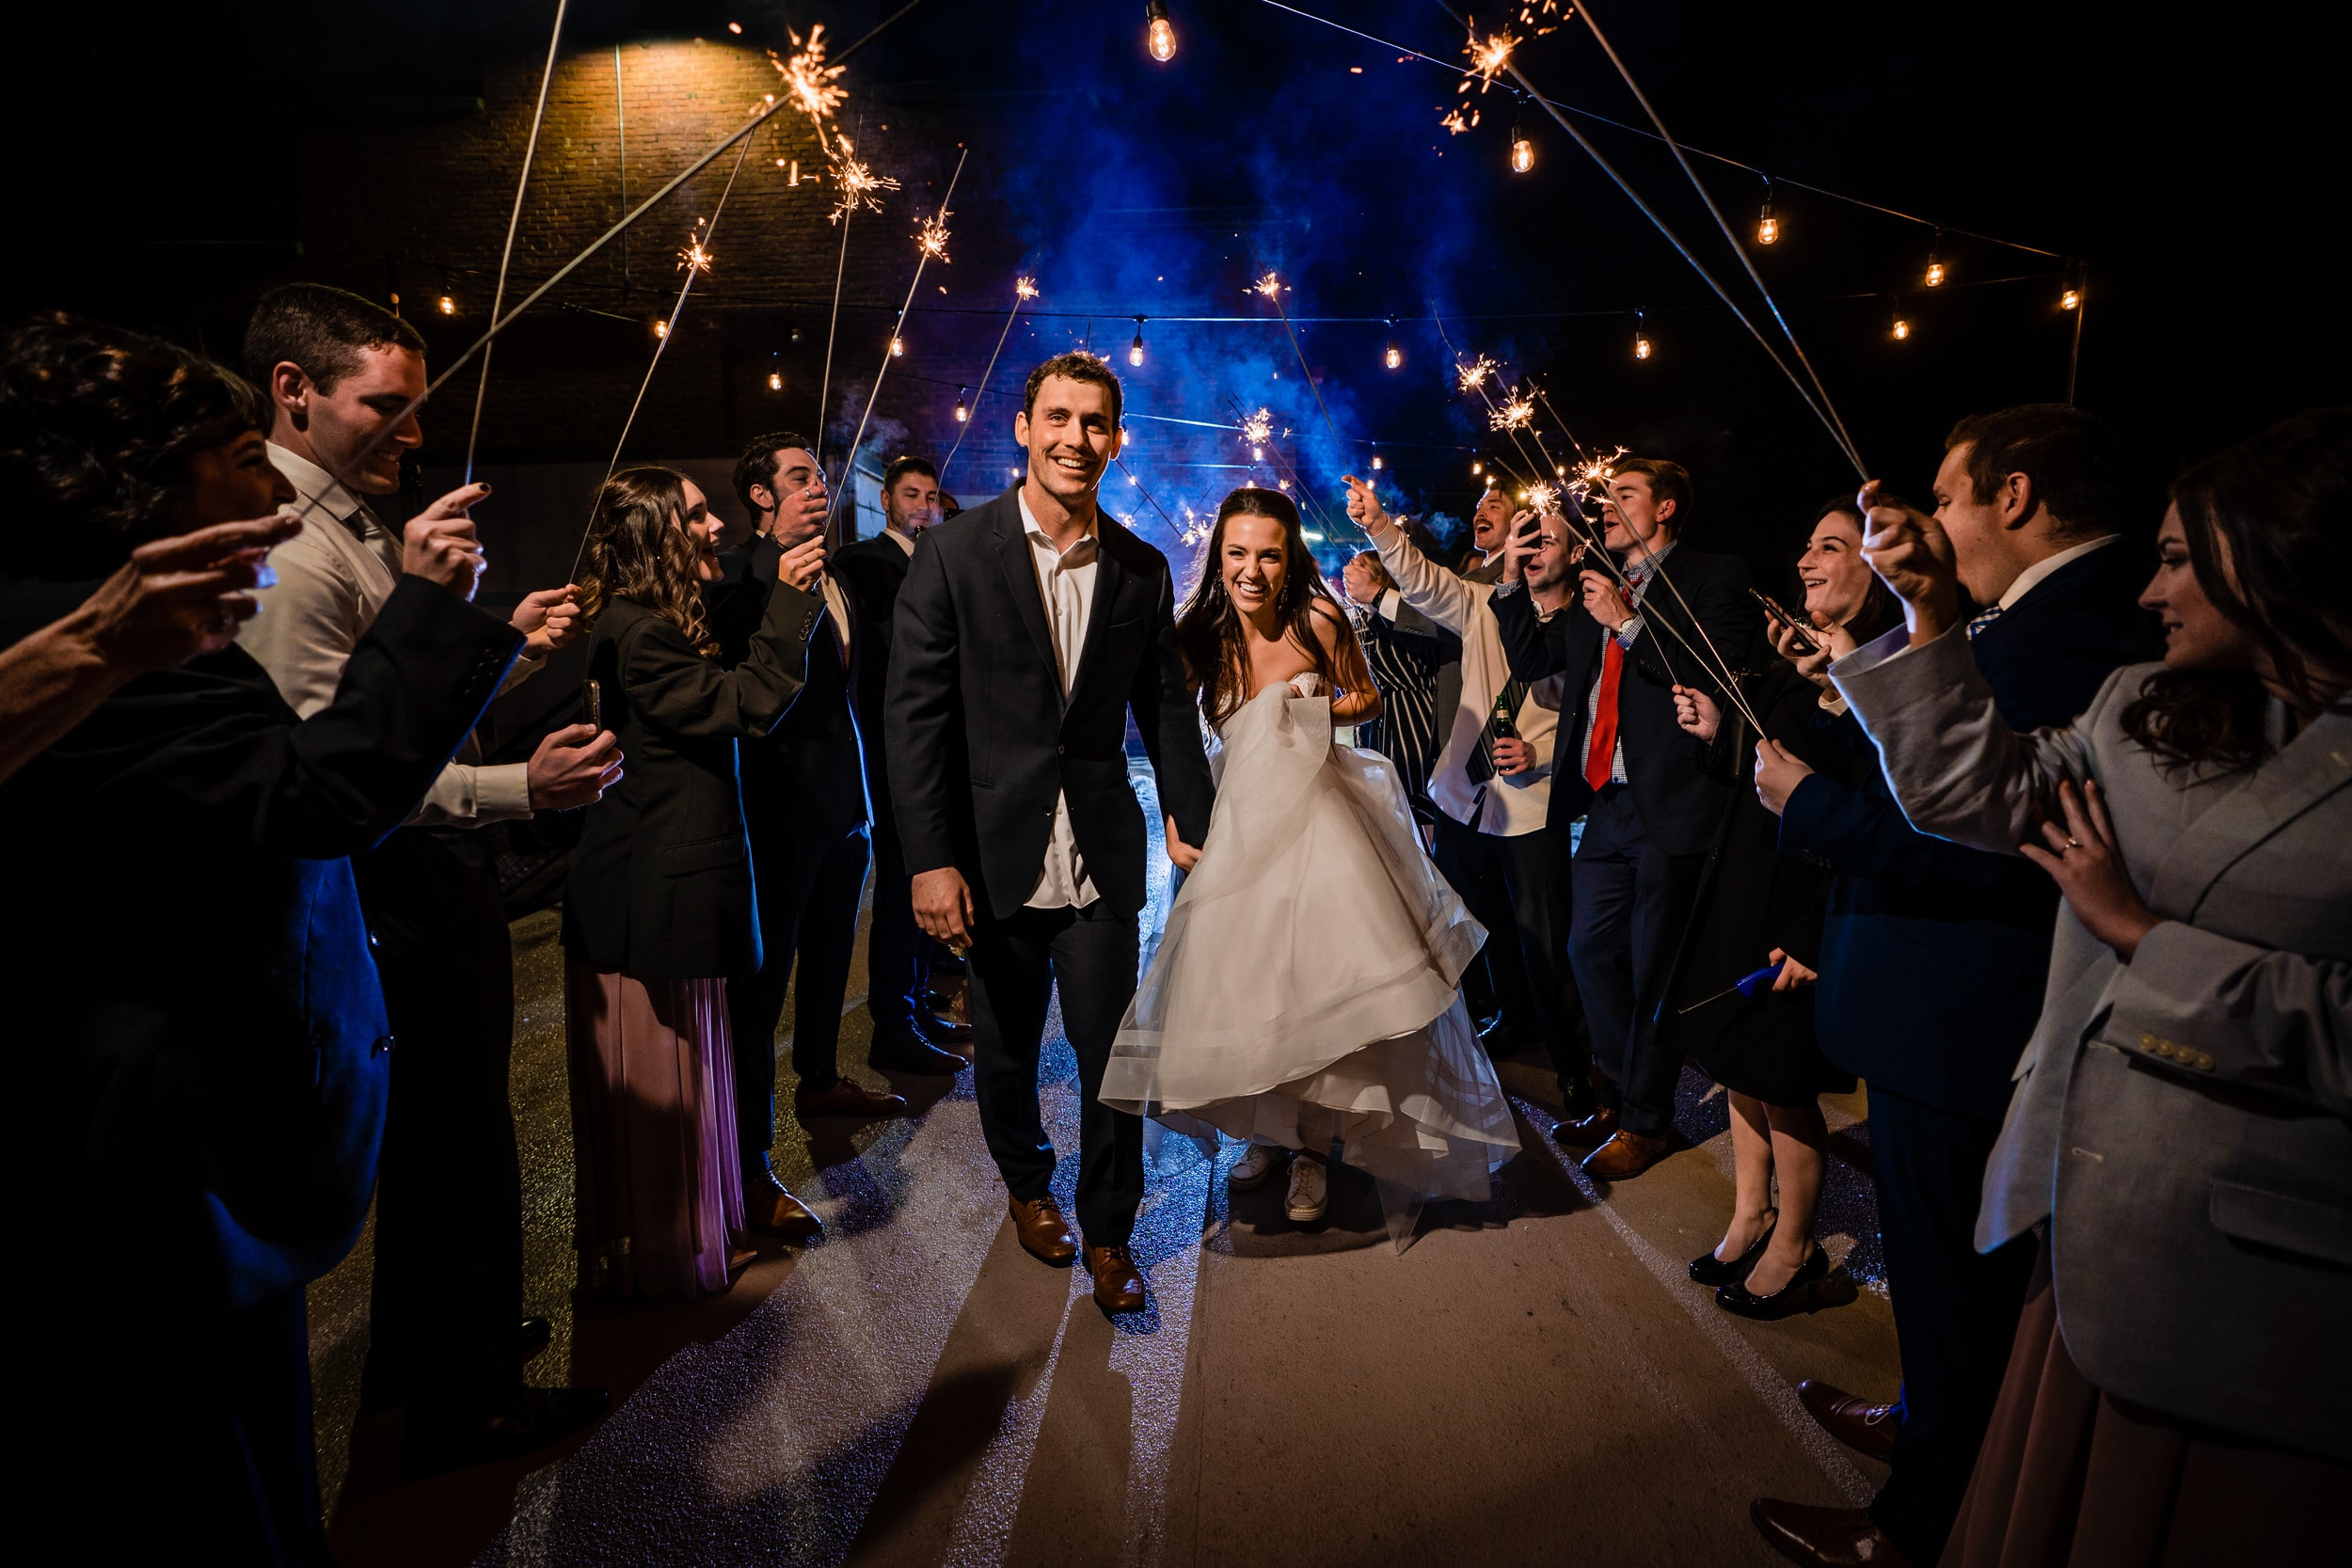 Bride and groom exiting through sparkler tunnel